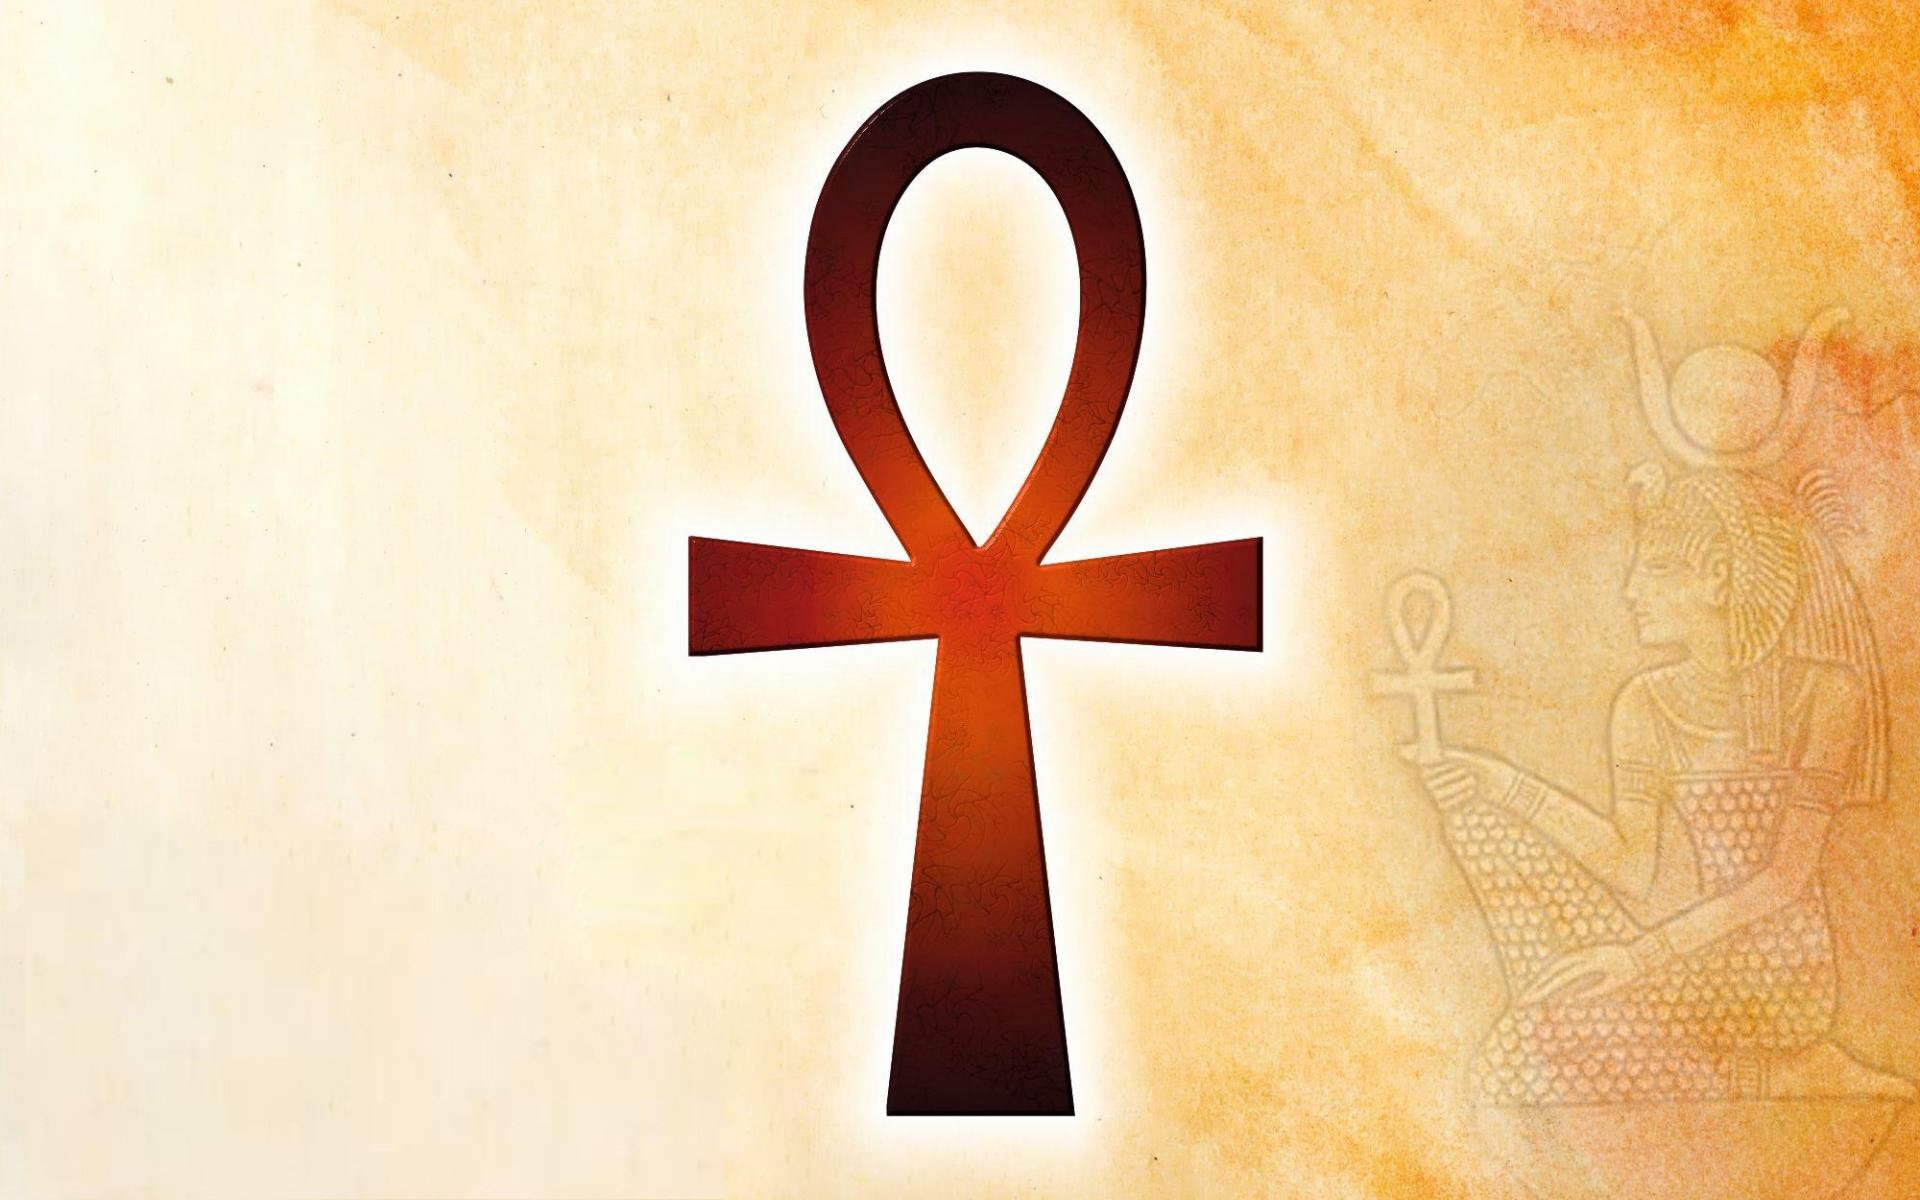 Ankh egyptian symbol of life and immortality and its meaning ankh egyptian symbol of life and immortality and its meaning biocorpaavc Image collections